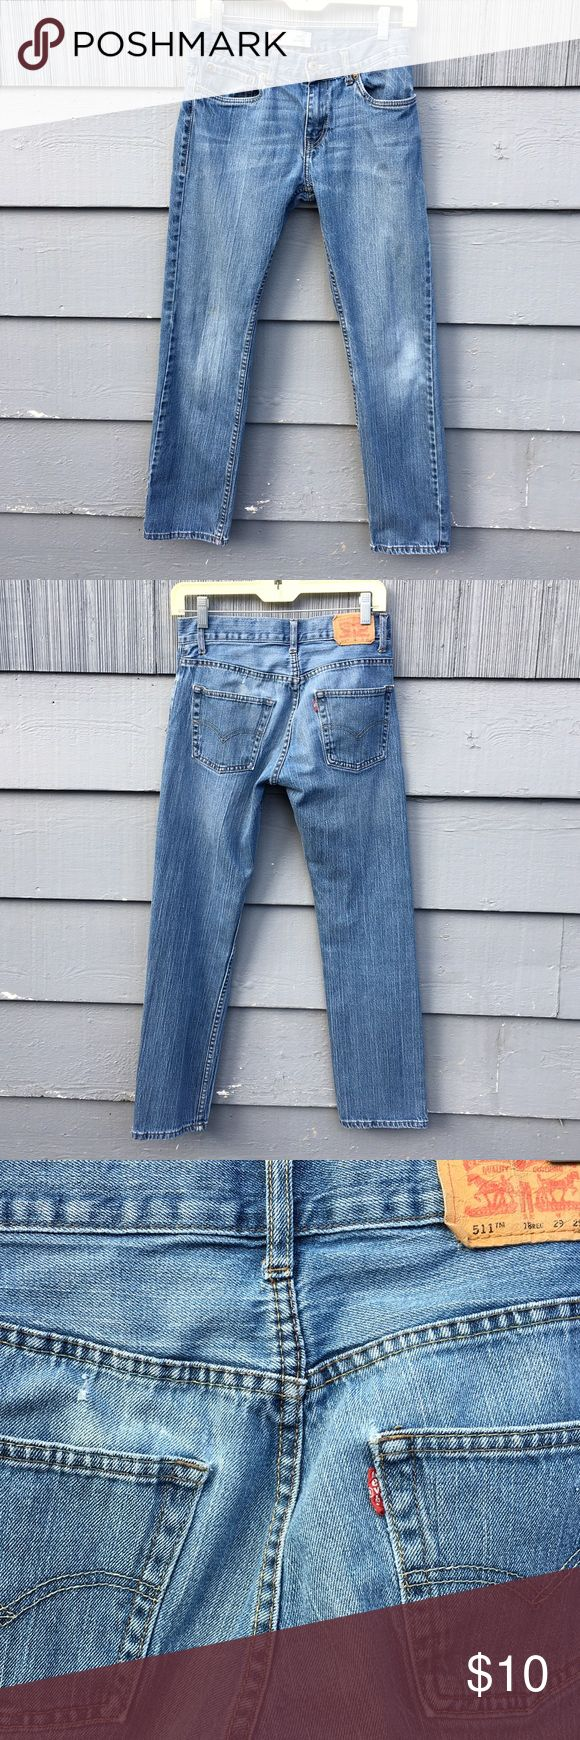 "Levis 511 Skinny Jeans Boys 29x29 Distressed Levis 511 Skinny Jeans, medium wash. Boys size 29x29. Good condition, slight distressing near the back pocked, no holes. Please see pics. Waist: 29"" Rise: 9"" Inseam: 29"" Levi's Jeans Skinny"